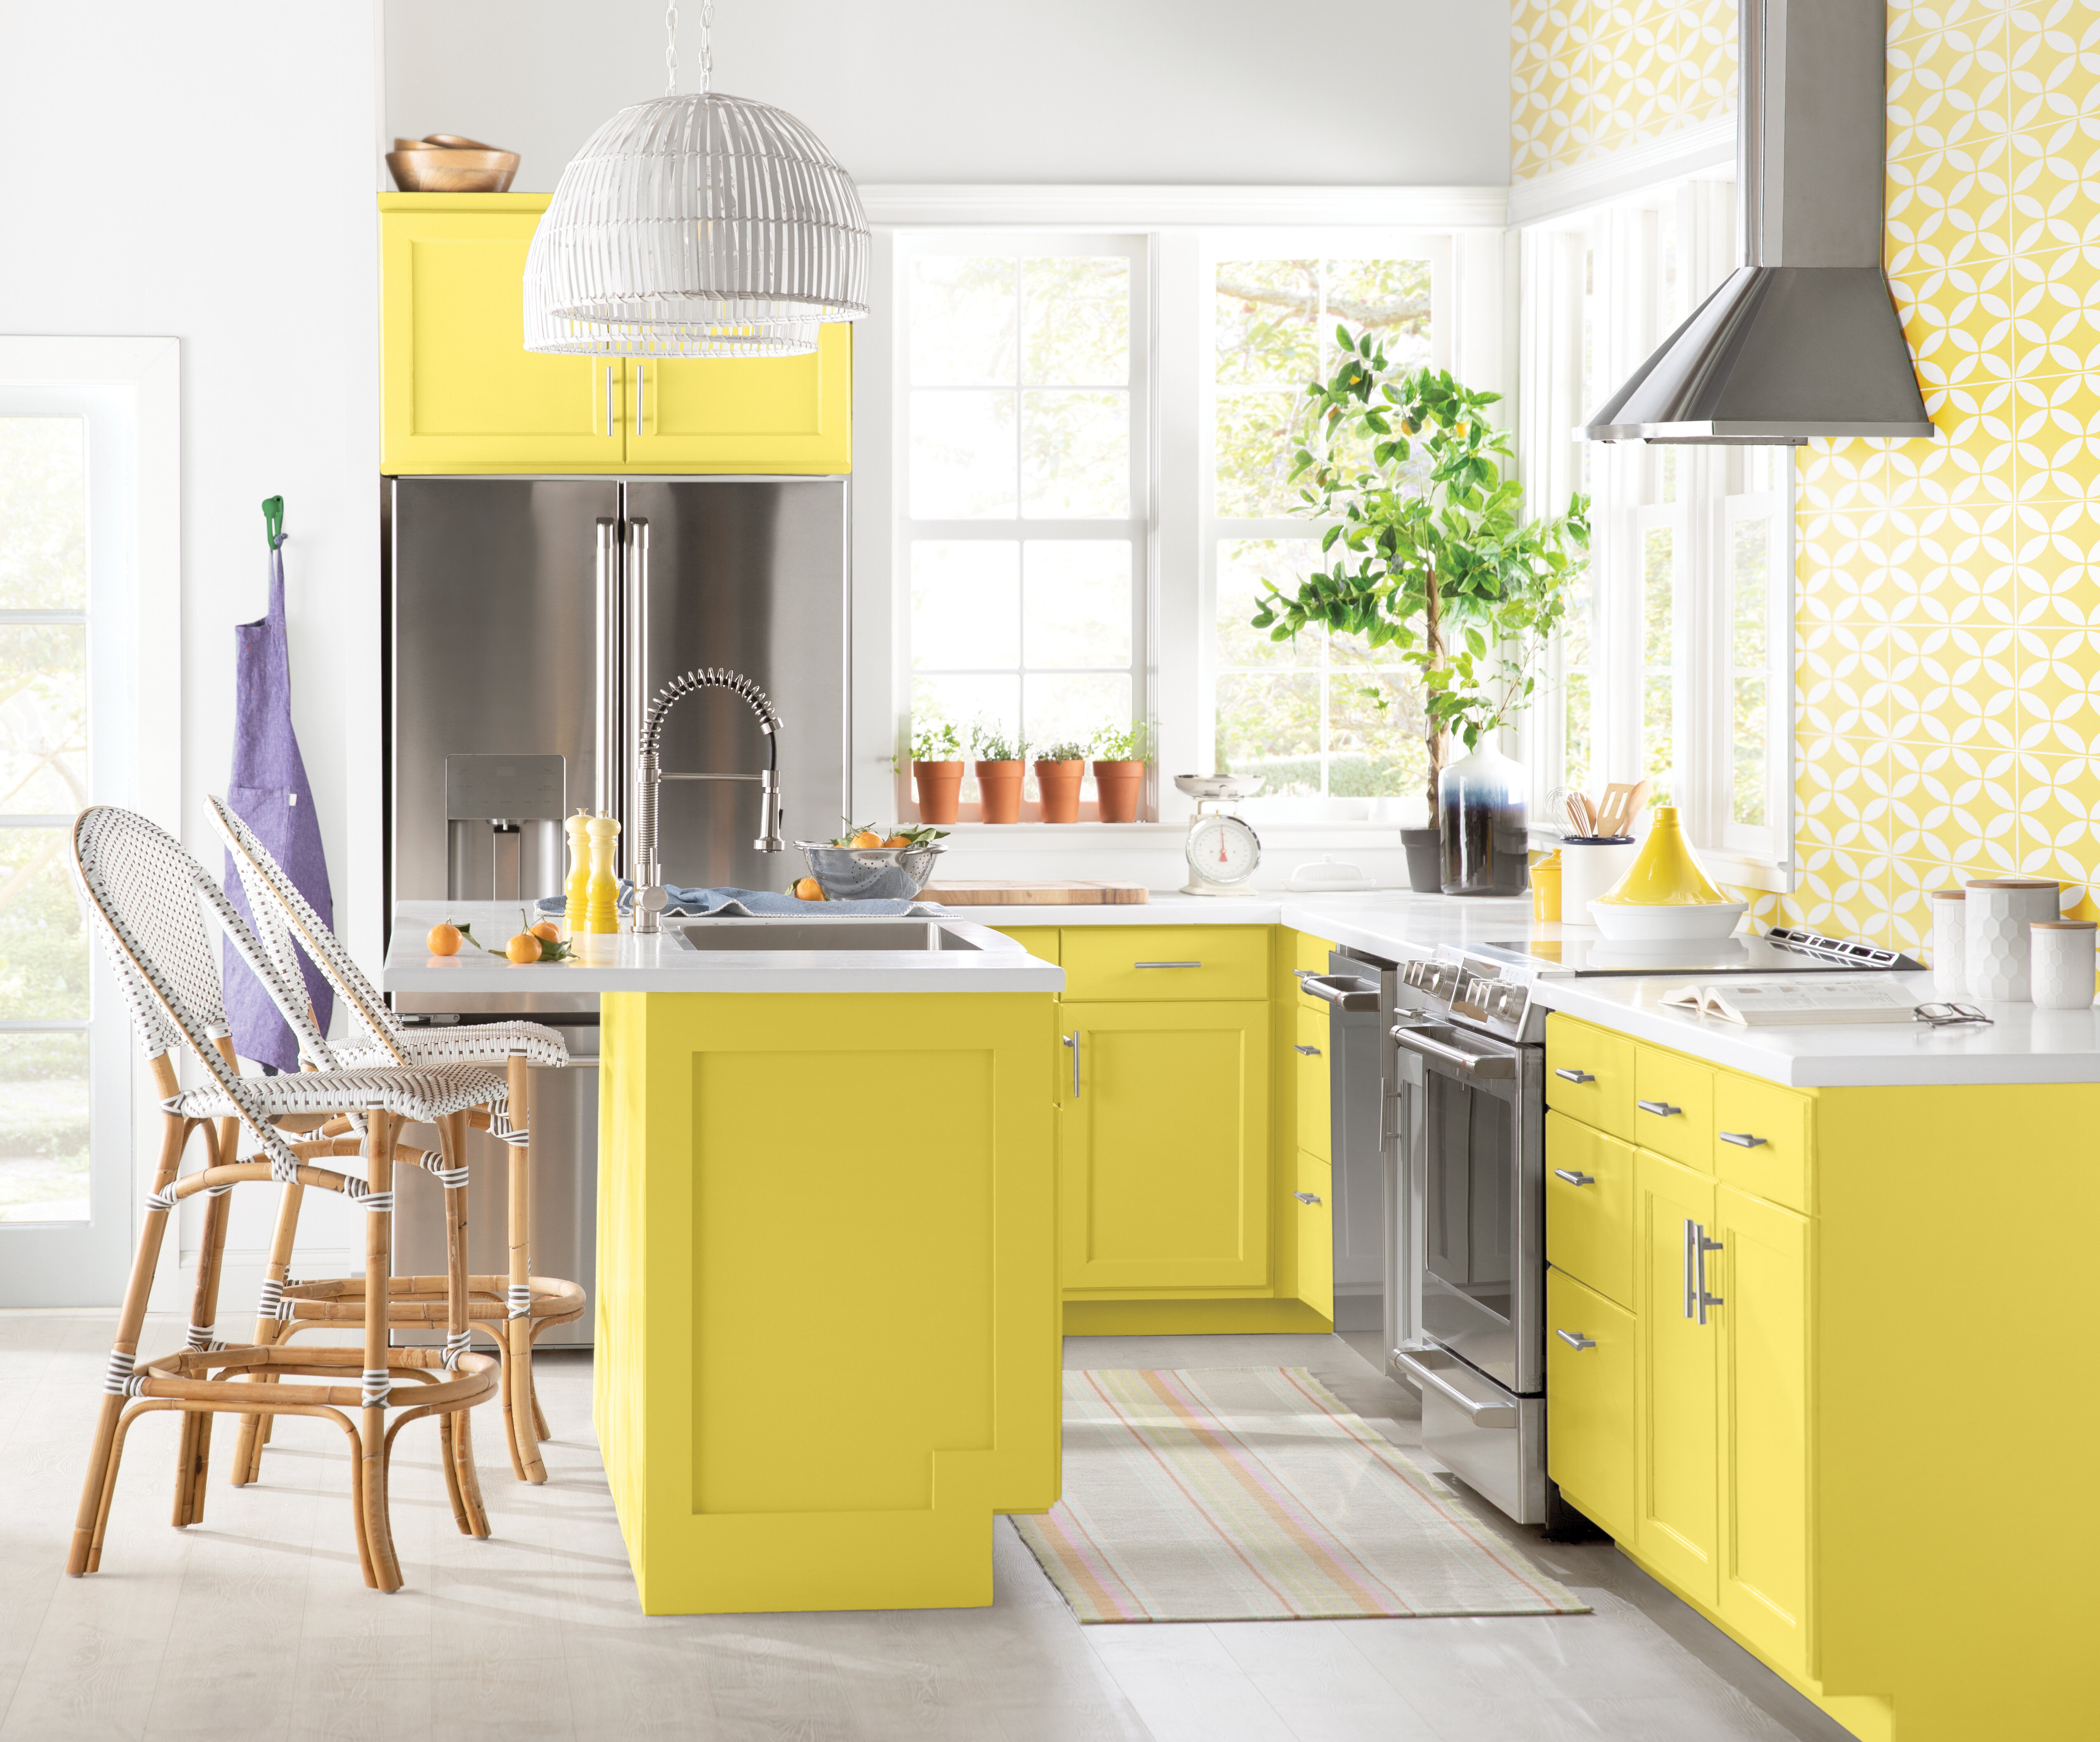 Colorful Kitchen Ideas That Will Inspire You Wayfair